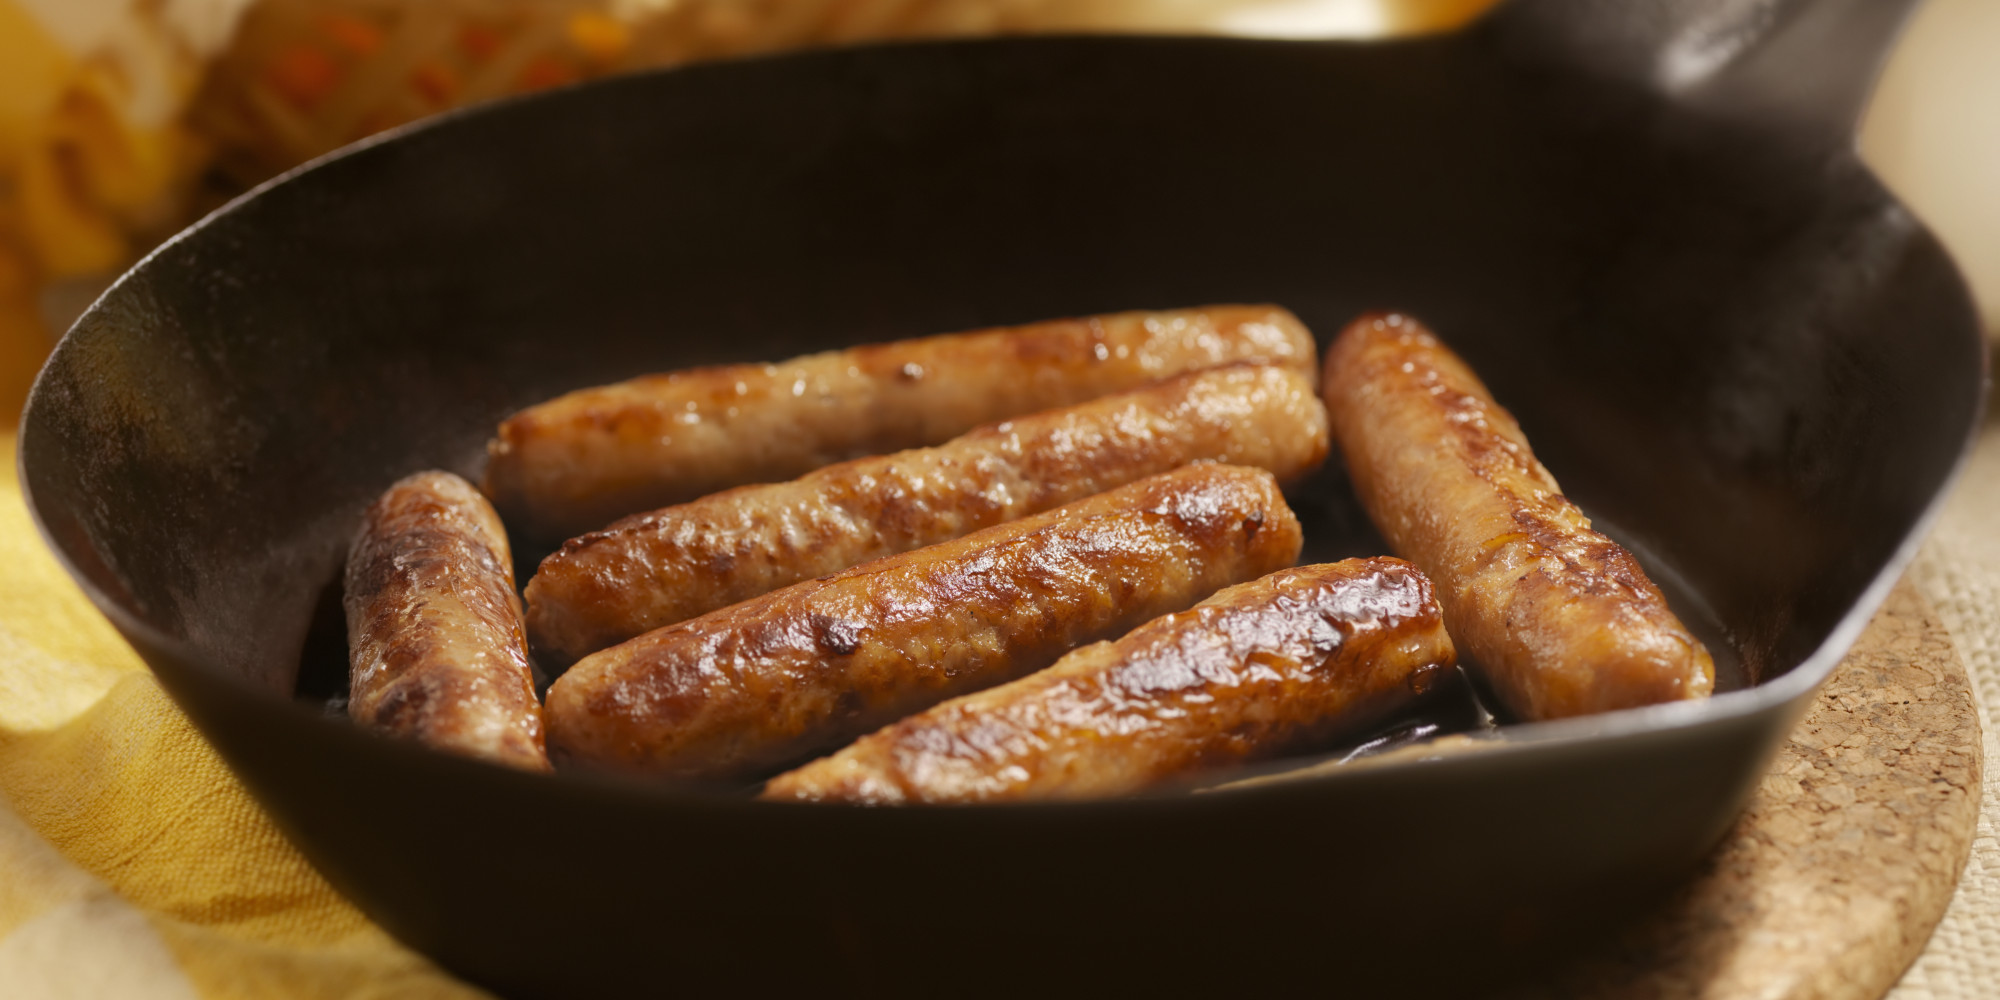 The Ultimate Breakfast Sausage Taste Test | The Daily Meal